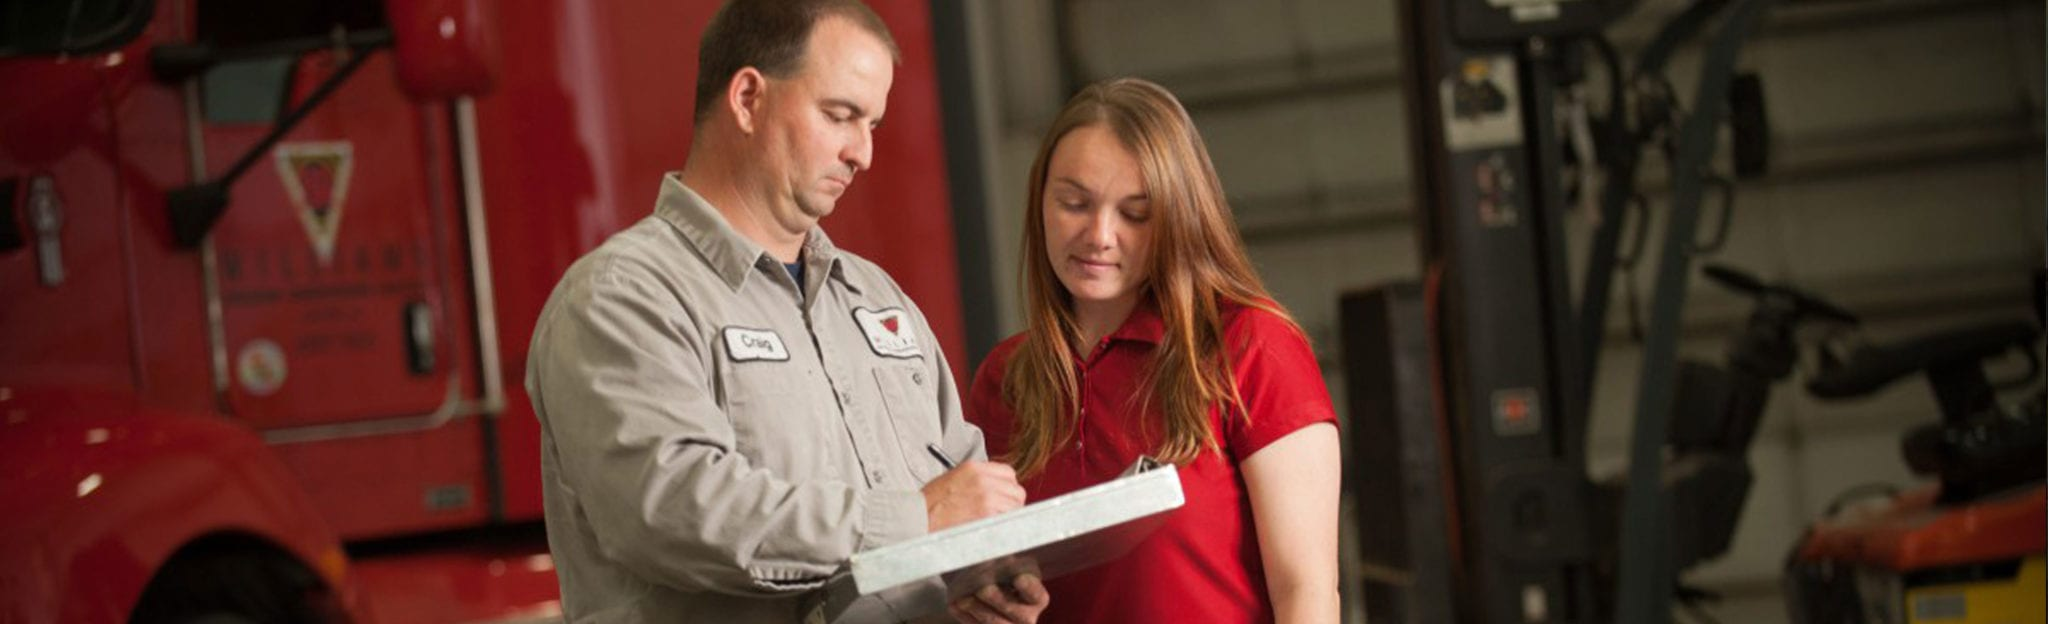 Distribution Management & Warehousing Services in Alabama